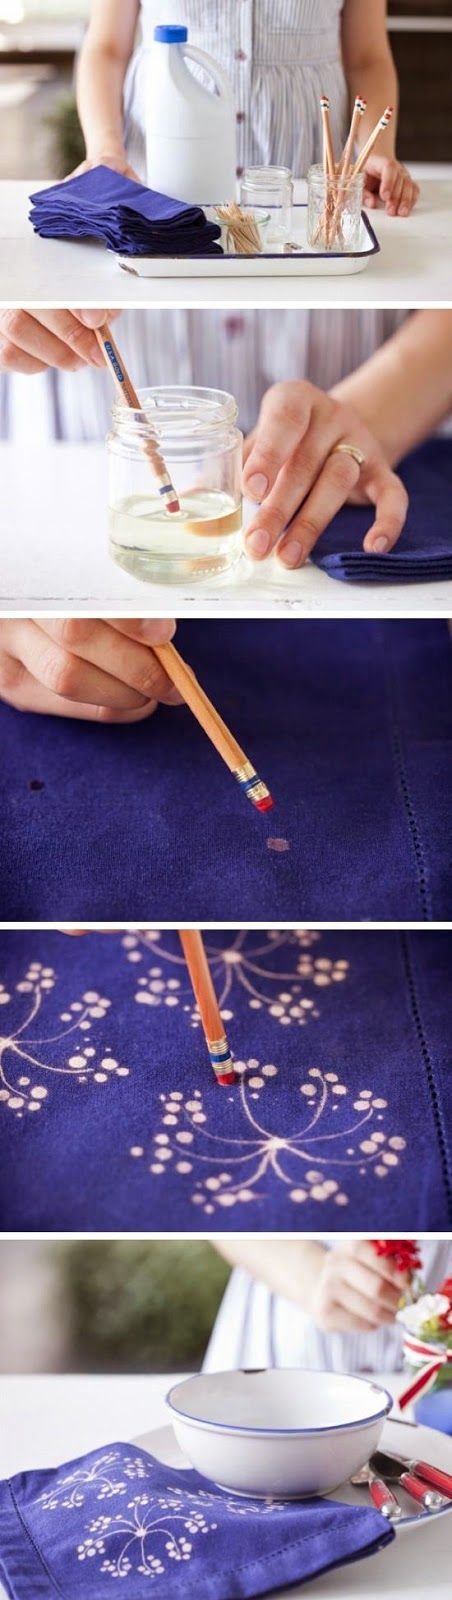 DIY � Fabric Bleach Art.